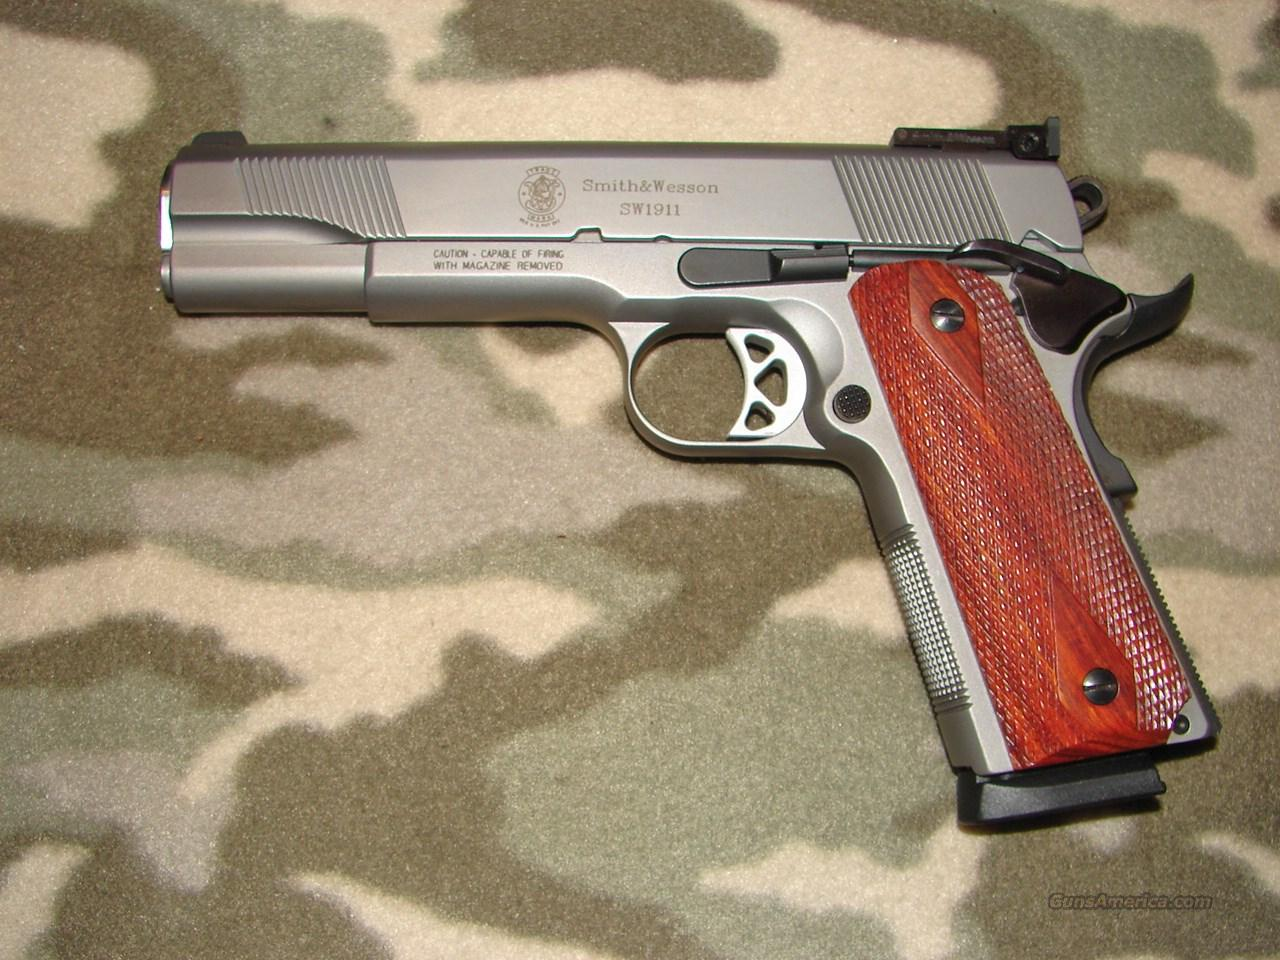 Smith & Wesson SW1911  Guns > Pistols > Smith & Wesson Pistols - Autos > Steel Frame